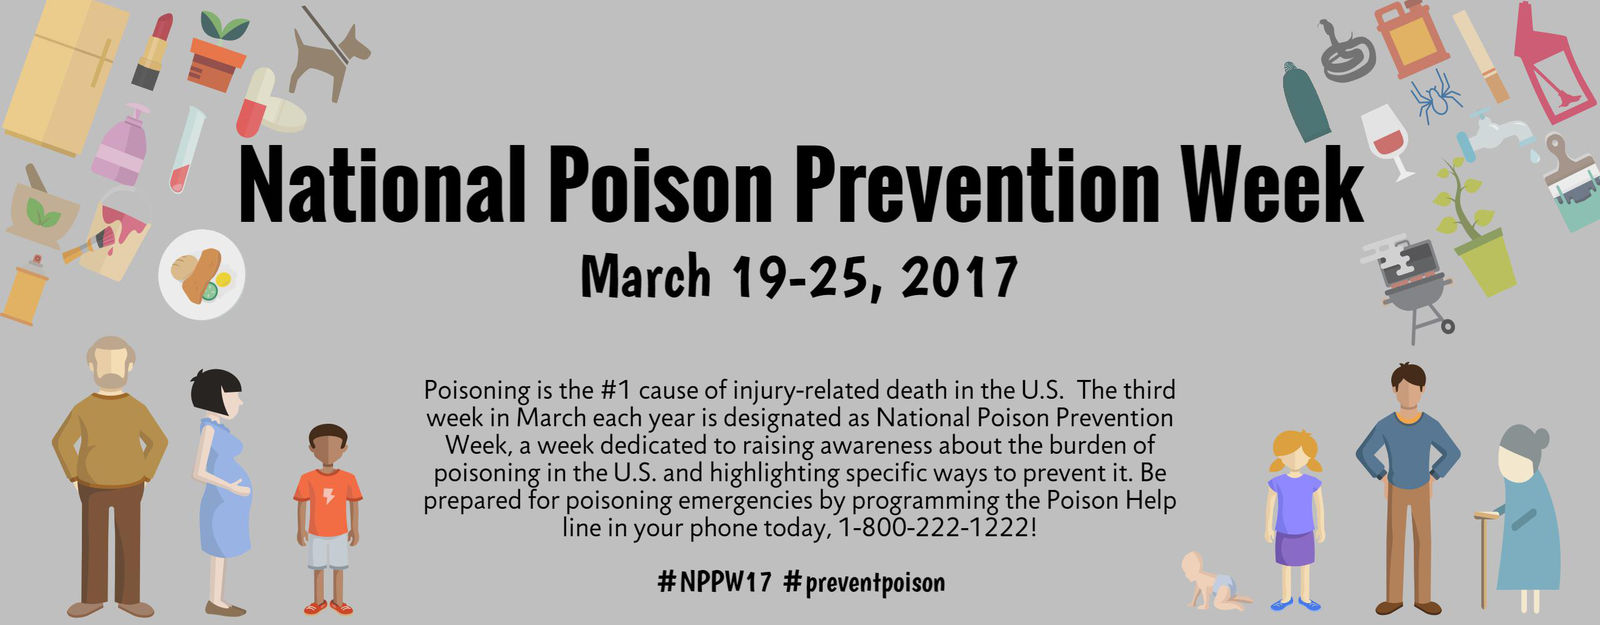 National Poison Prevention Week March 19-25, 2017 Poisoning is the #1 cause of injury-related death in the US. The third week in March each year is designated as National Poison Prevention Week, a week dedicated to raising awareness about the burden of poisoning in the US and highlighting the specific ways to prevent it.  Be prepared for poisoning emergencies by programming the Poison Help line in your phone today, 1-800-222-1222! #NPPW17 #preventpoison